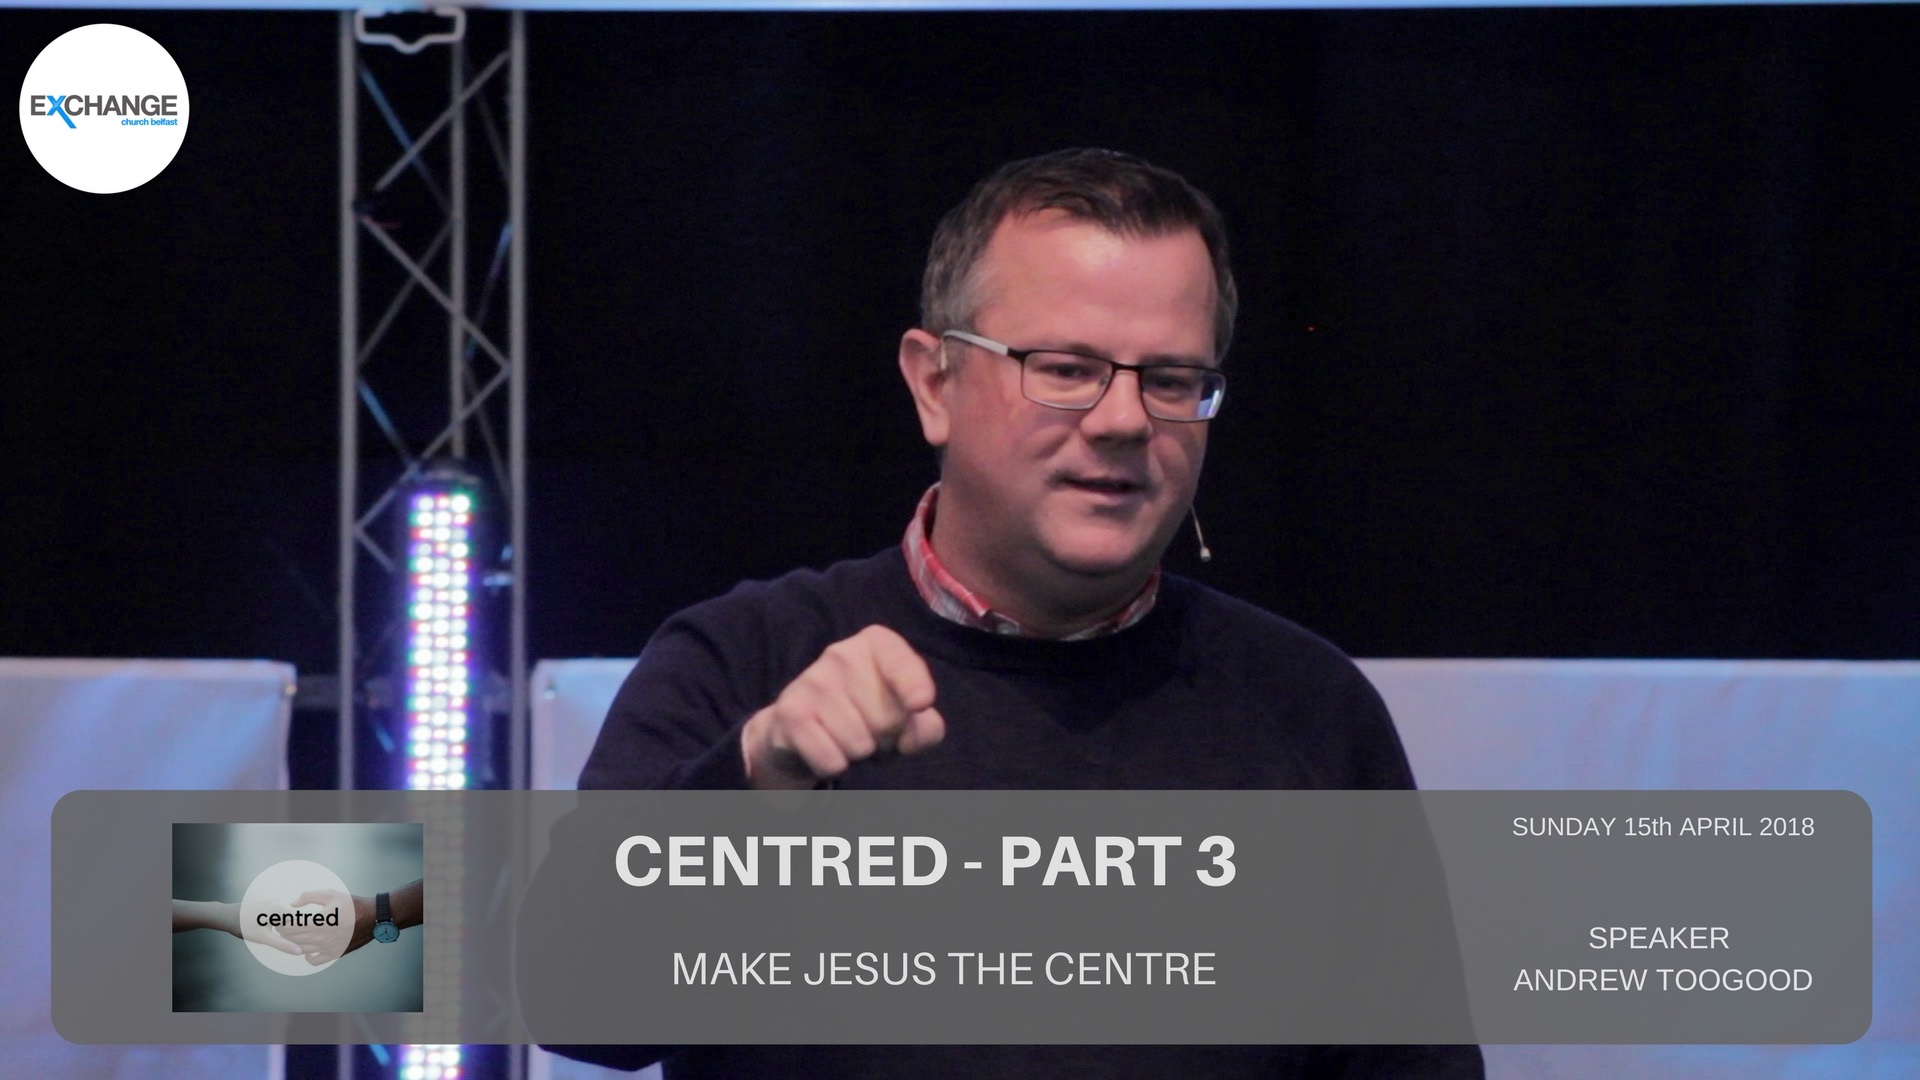 Centred - Part 3 - Make Jesus the Centre